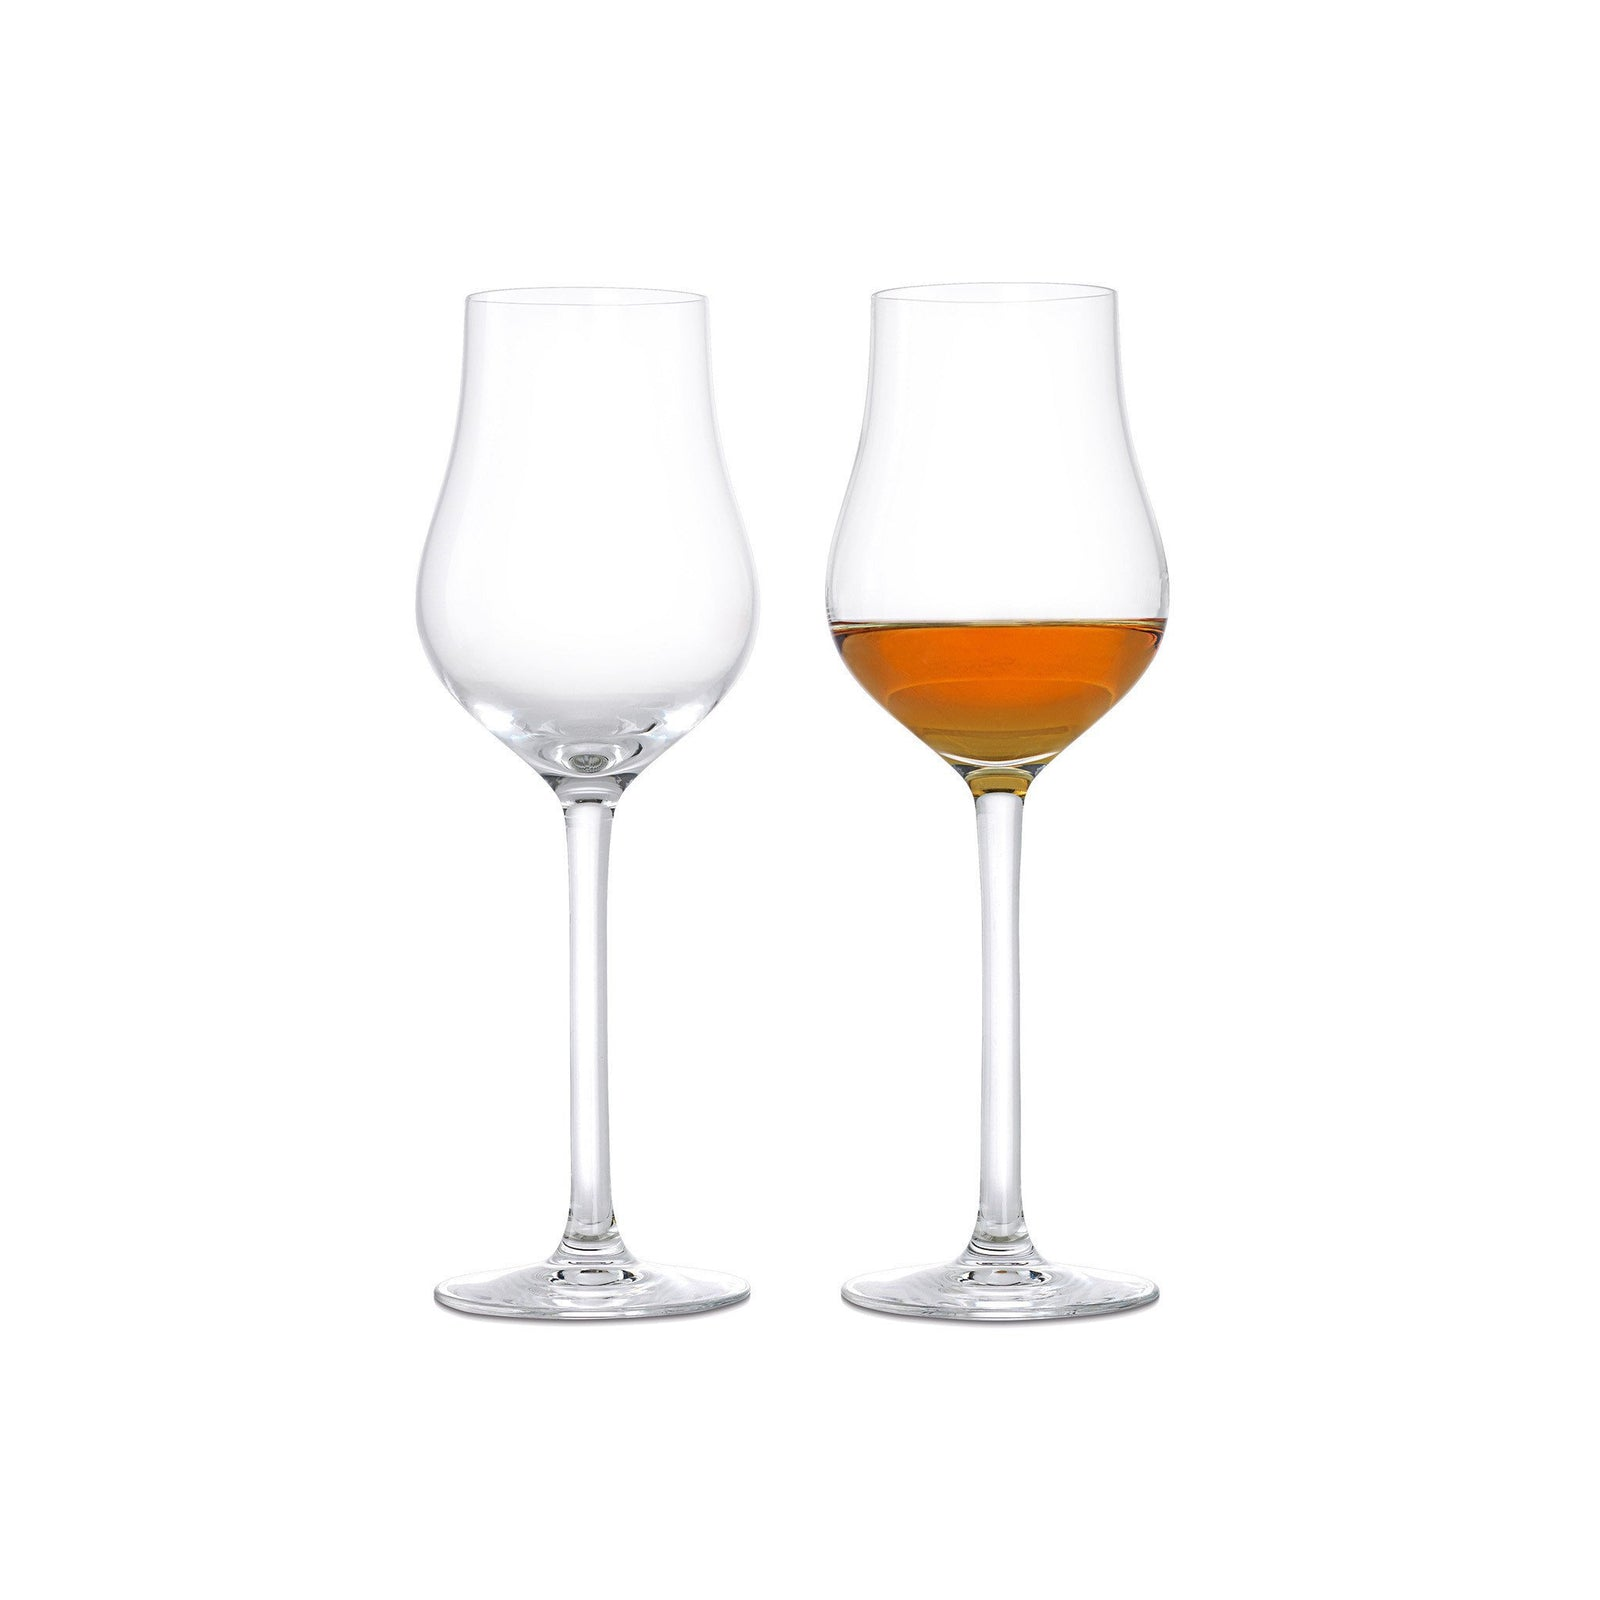 Premium Spirits Glass, 2 Pcs.